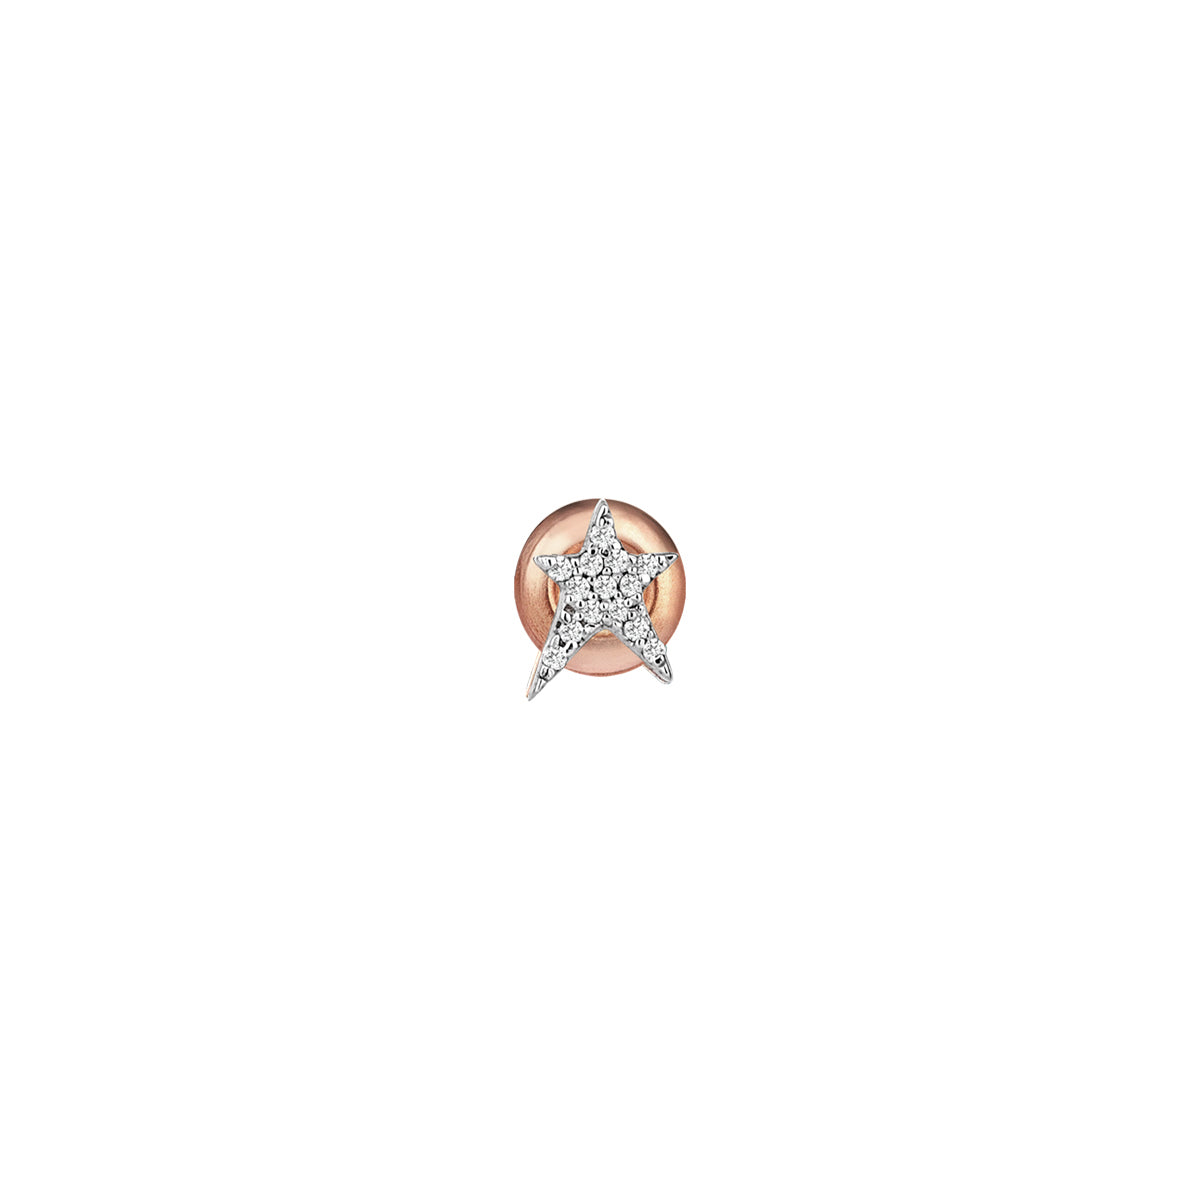 Small Struck Stud by Kismet for Broken English Jewelry